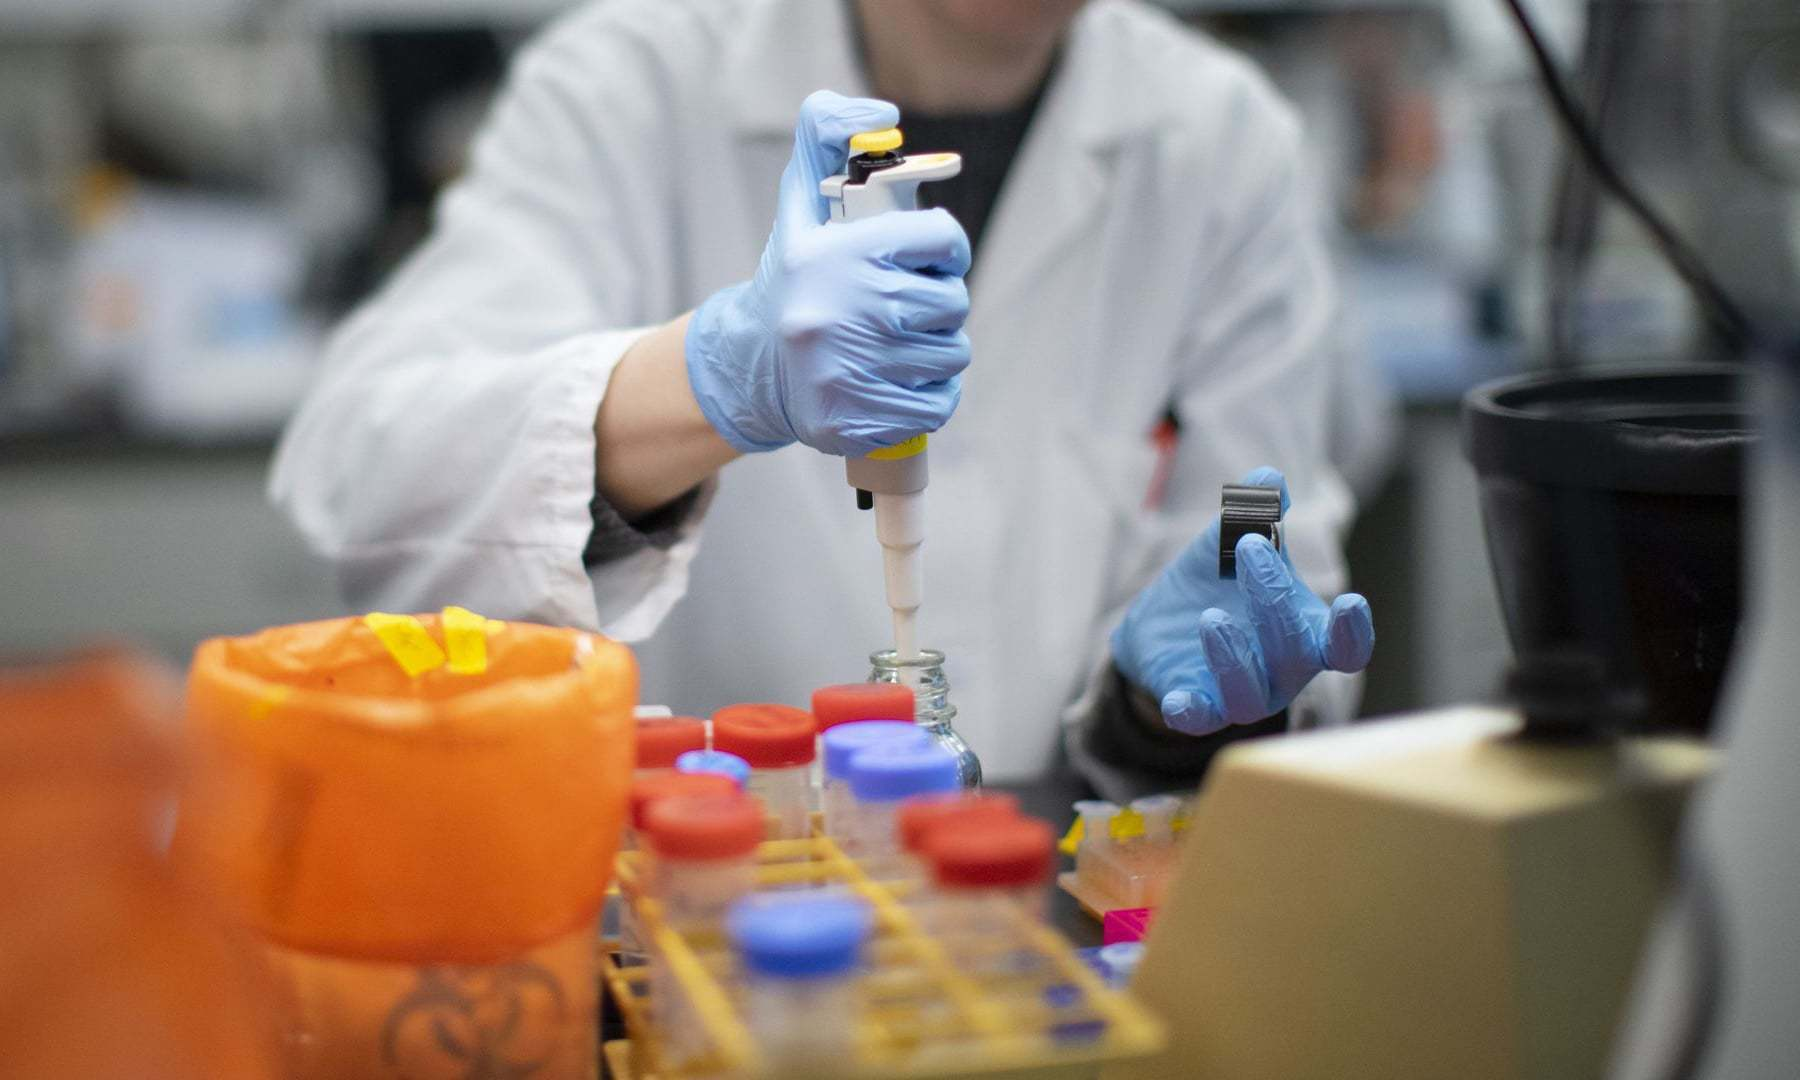 Move could help shots developed by companies like AstraZeneca and Johnson & Johnson. — AFP/File